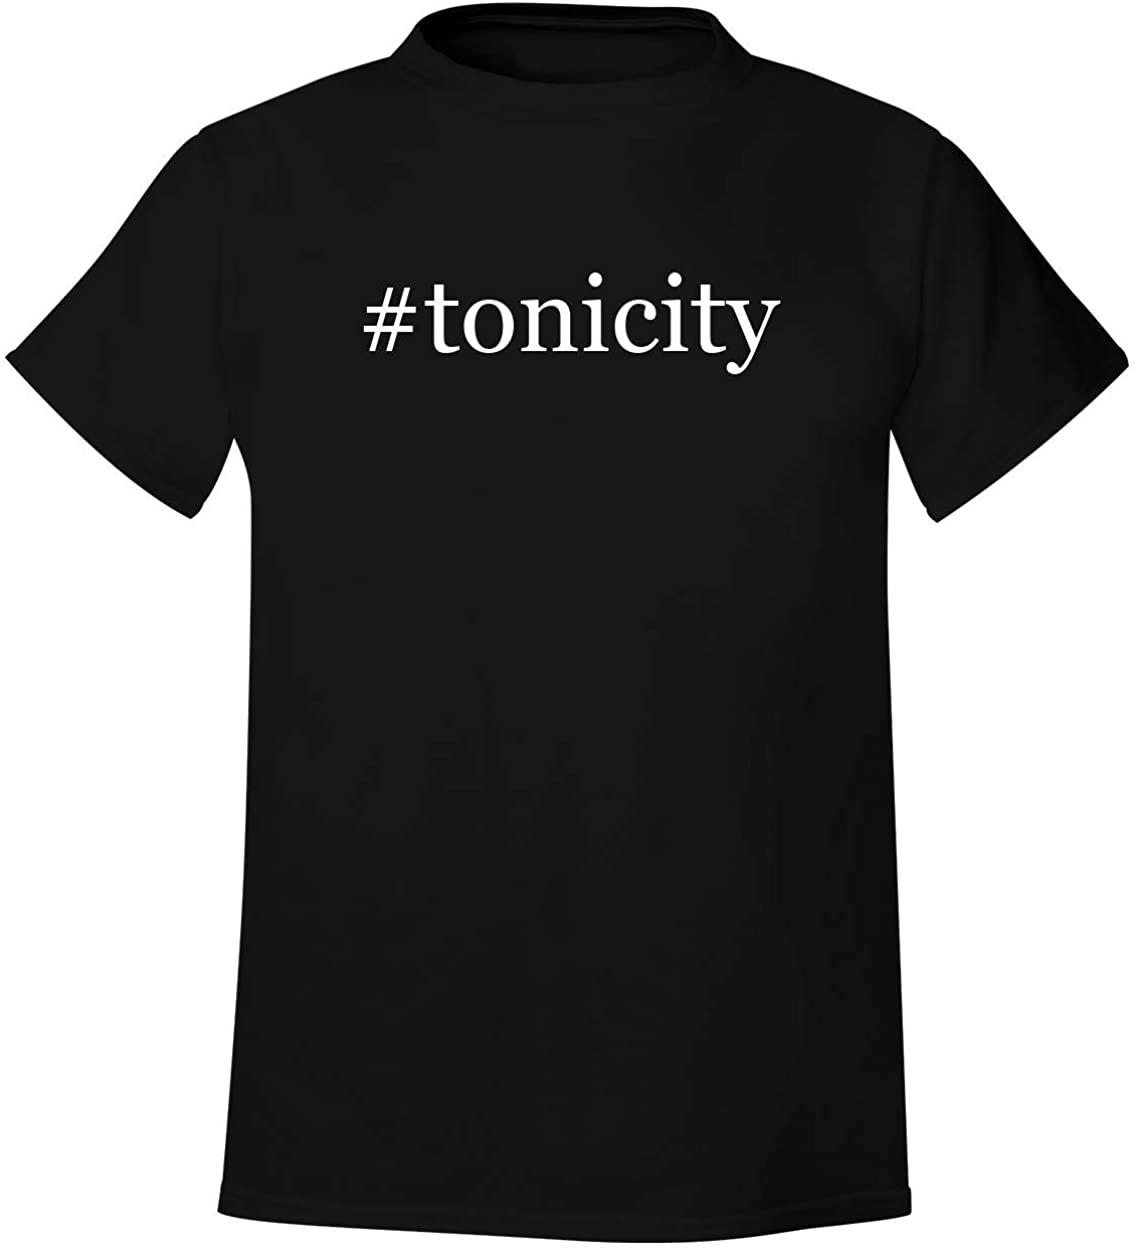 #tonicity - Men's Hashtag Soft & Comfortable T-Shirt